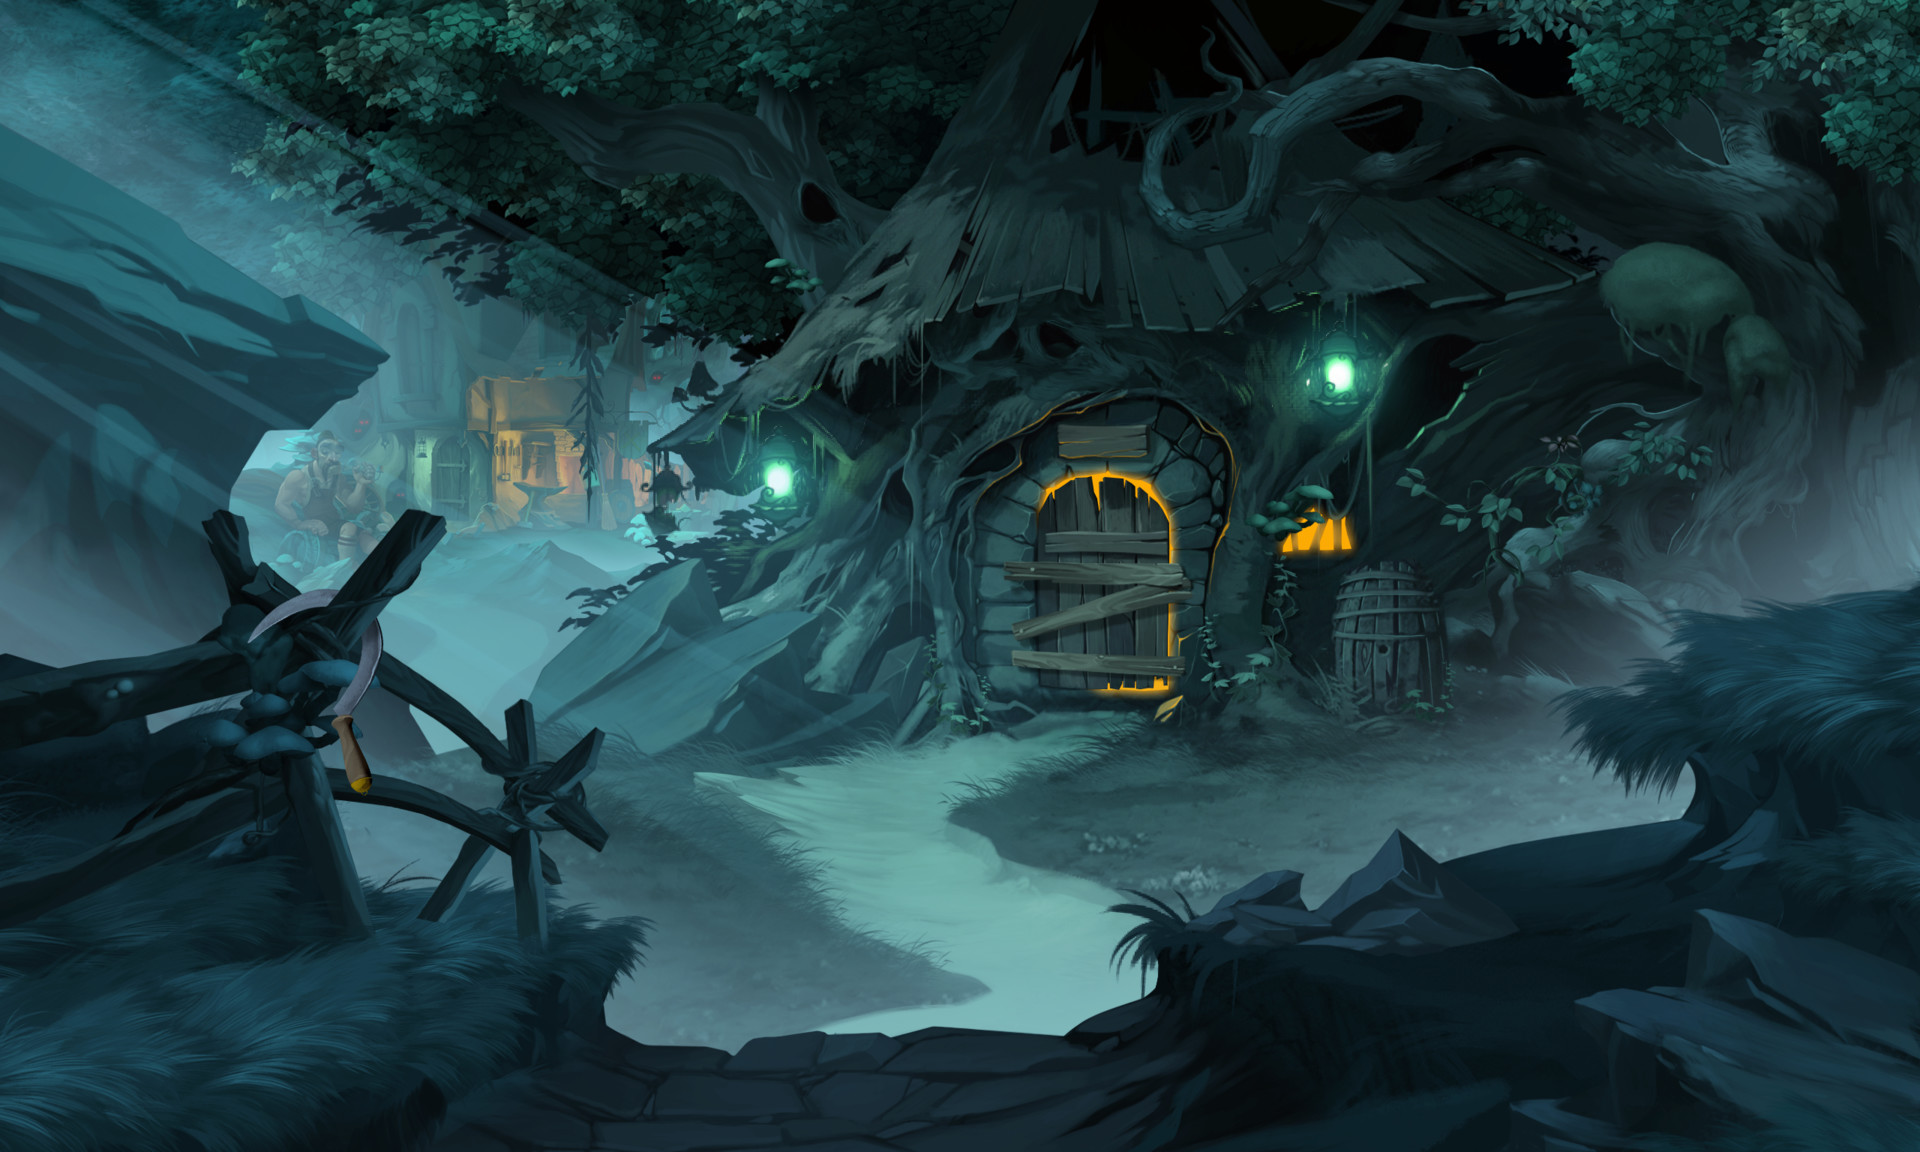 ArtStation - Fearful Tales - Hansel and Gretel, CHAPTER 2